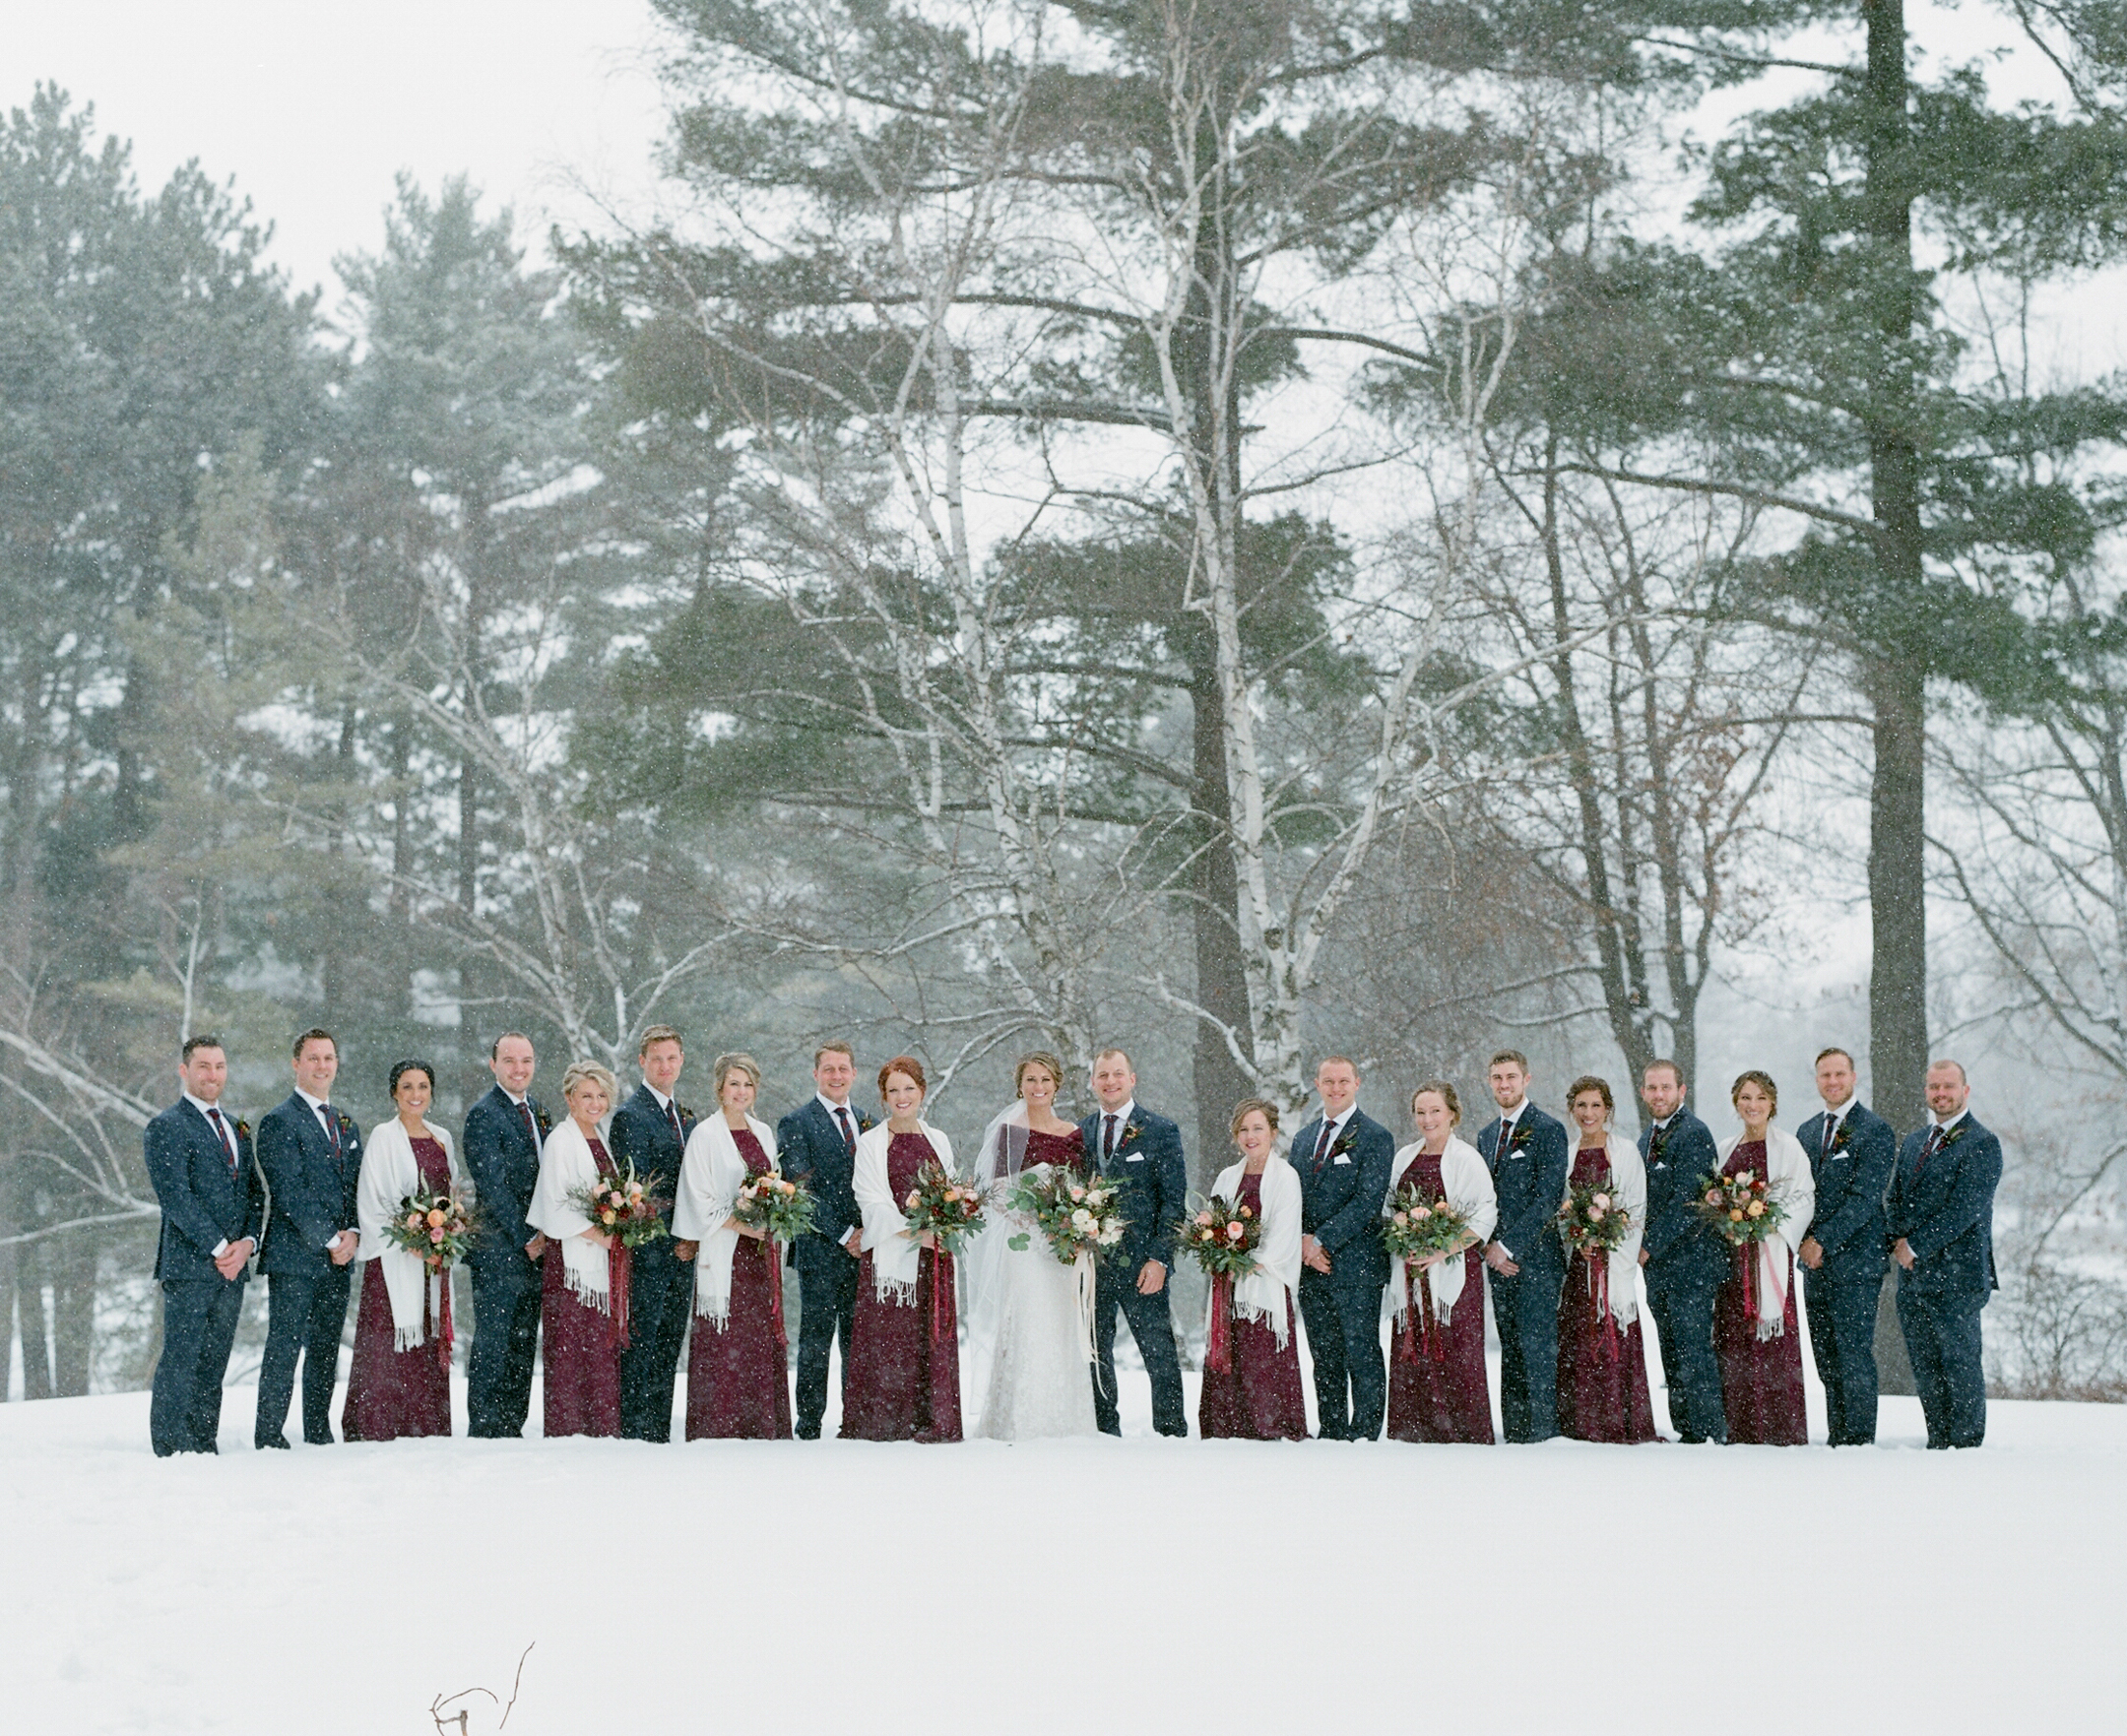 20-Rothschild-Pavilion-Winter-Wedding.jpg